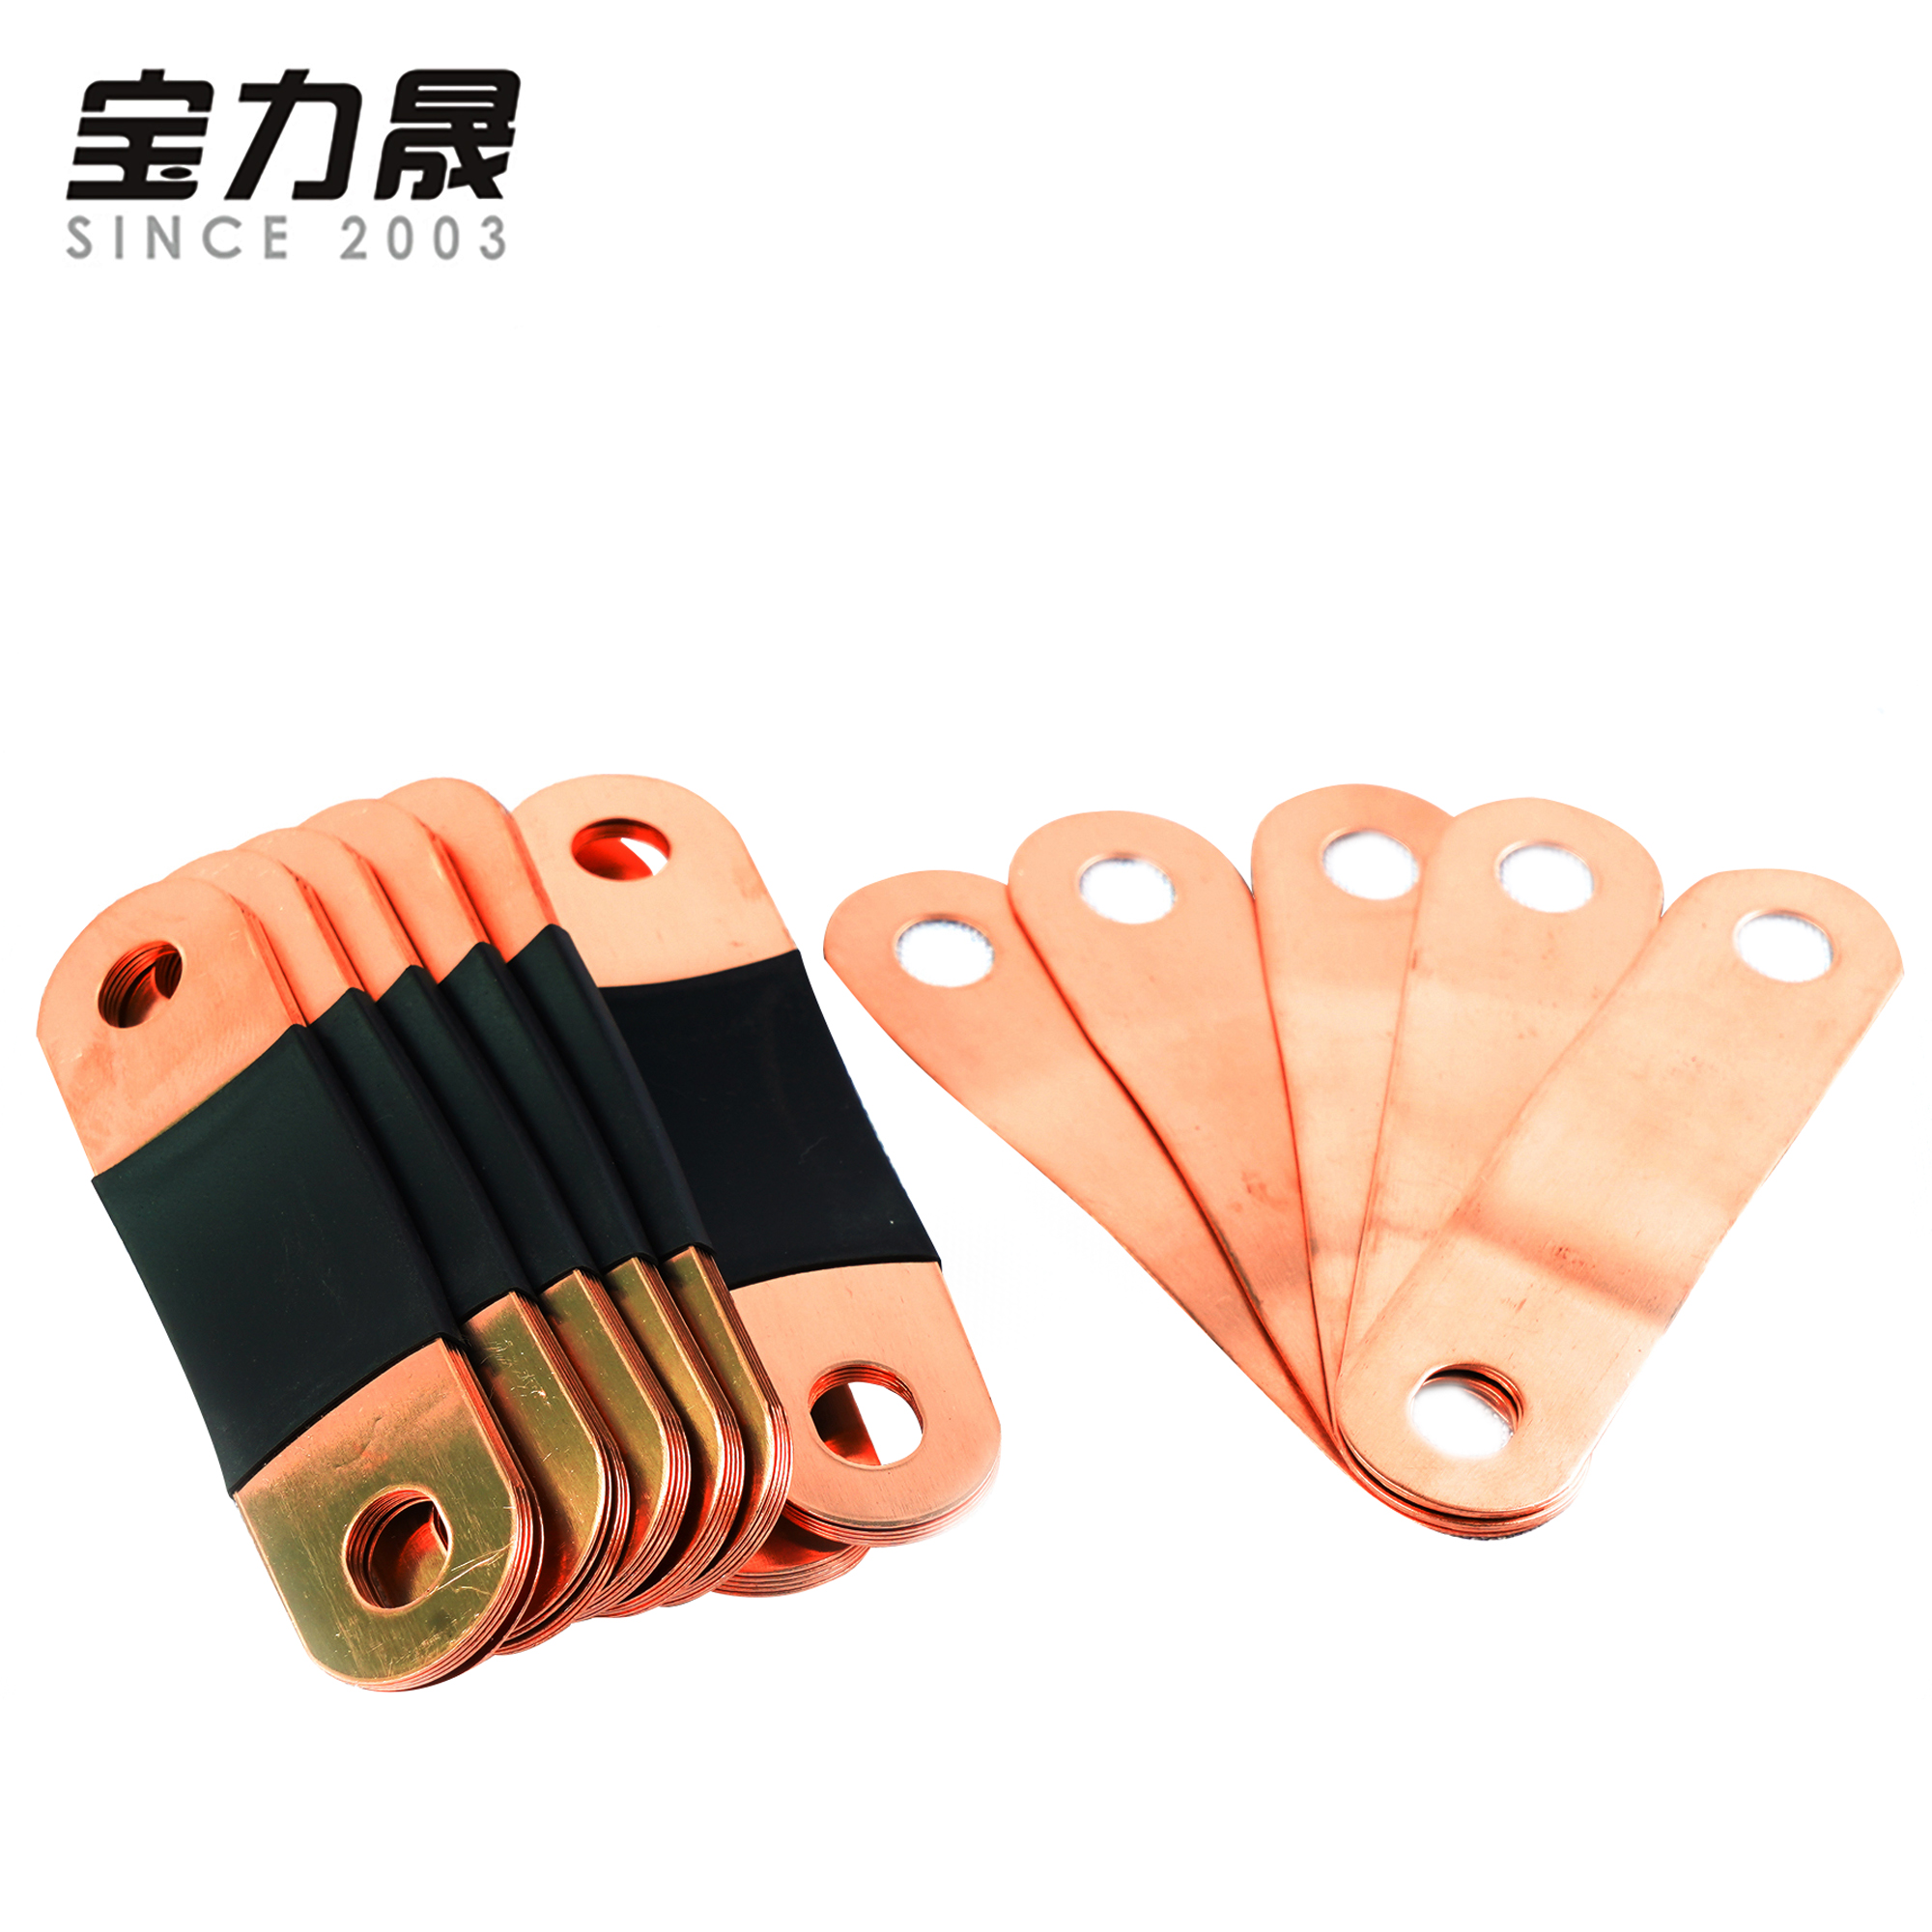 7PCS copper BusBars for CALB CATL 3.2V <font><b>lifepo4</b></font> battery packs <font><b>12V</b></font> 24V 36V 48V 80ah 100AH 120AH <font><b>150AH</b></font> 180AH 200AH 280AH 300AH image